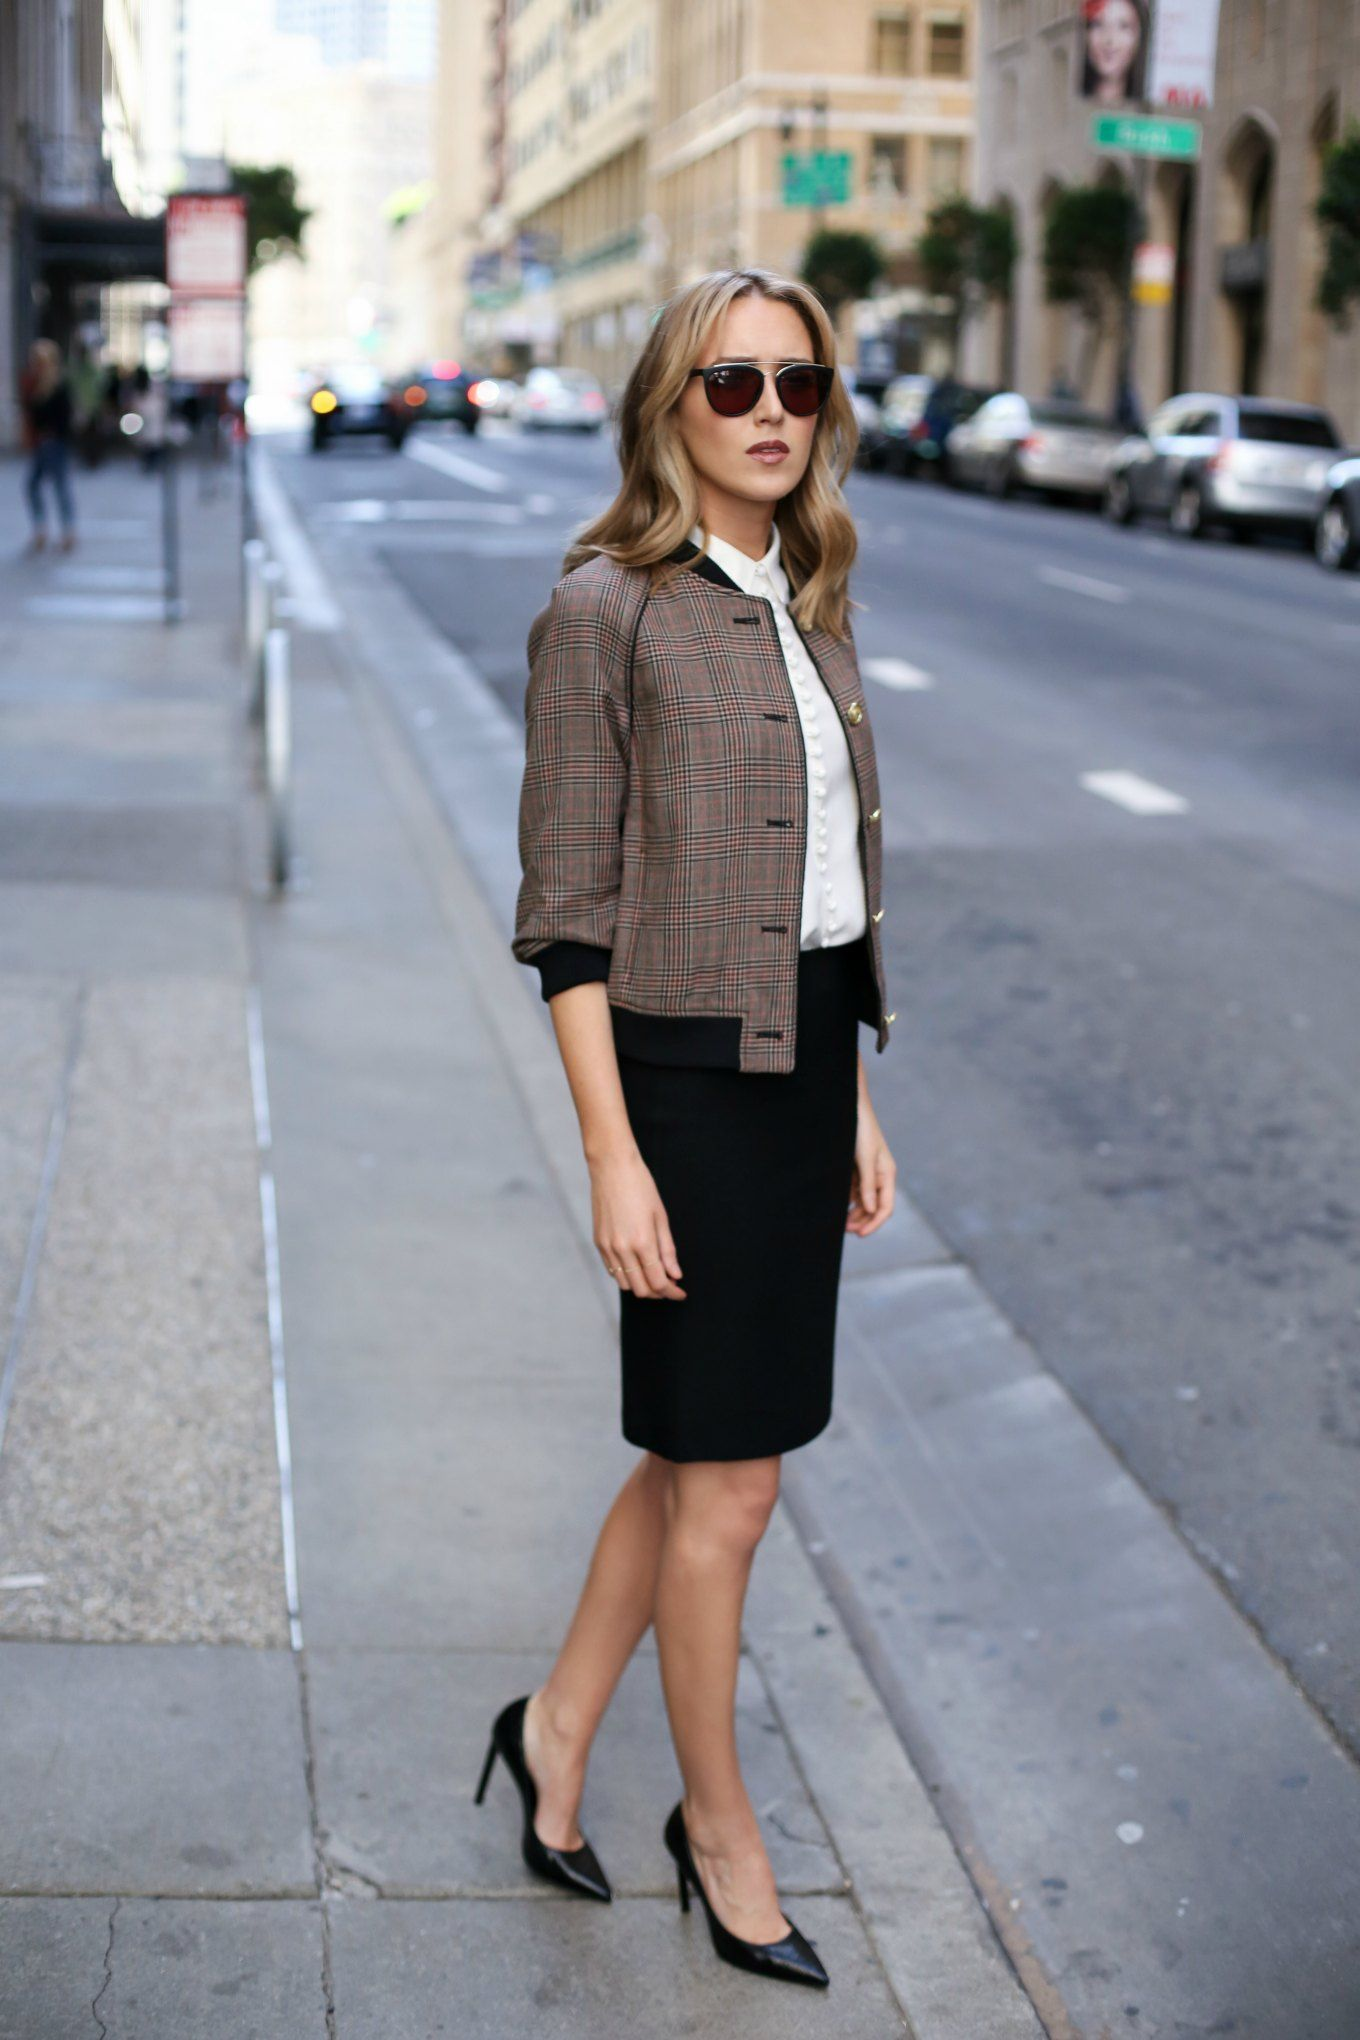 How to Wear a Bomber Jacket to the Office   MEMORANDUM, formerly The Classy Cubicle